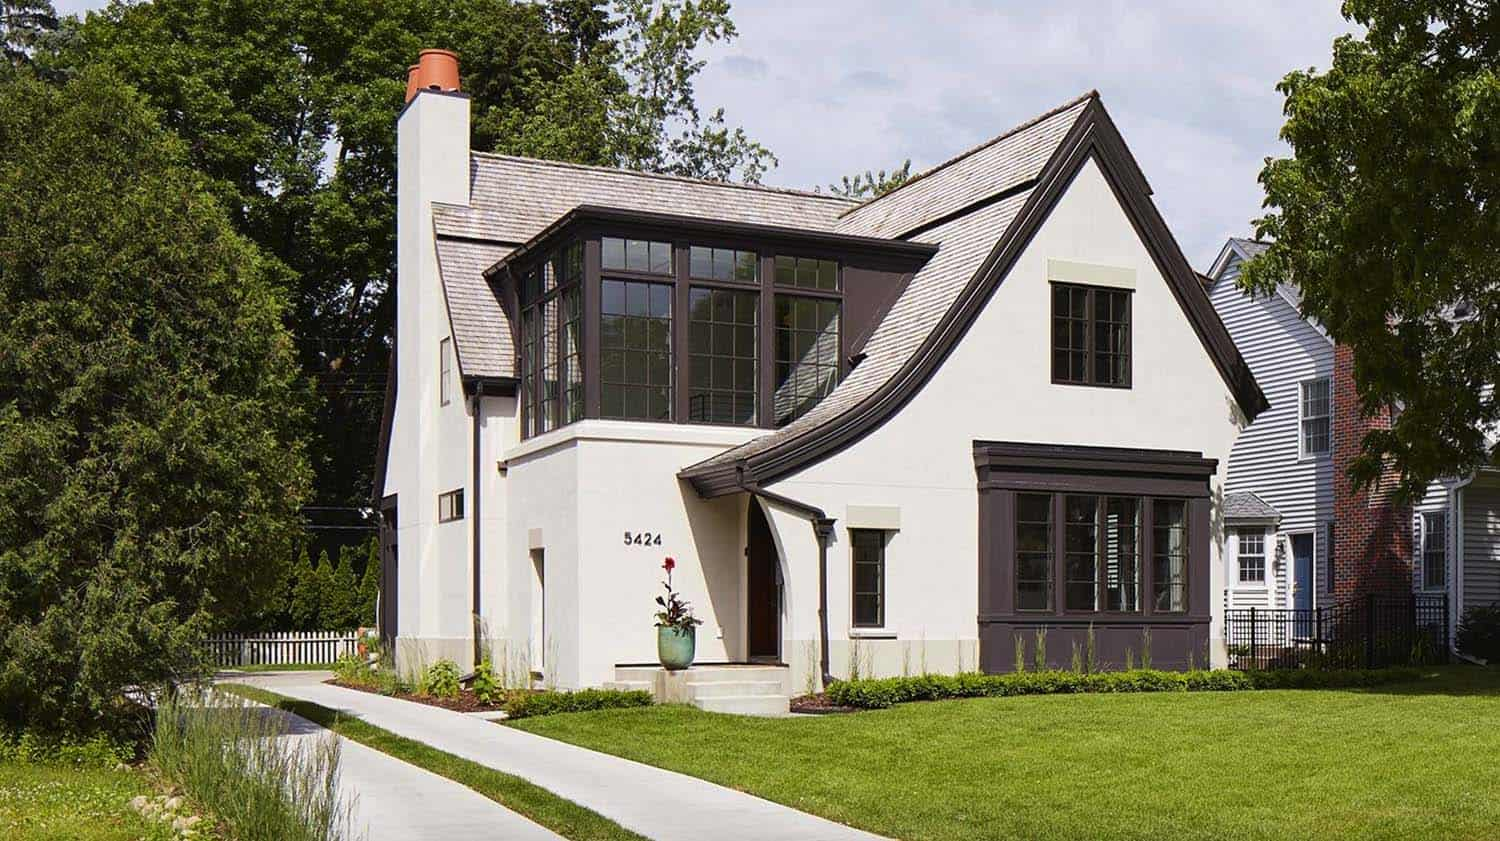 Modern Scottish Cottage In Minnesota Radiates With Stylish